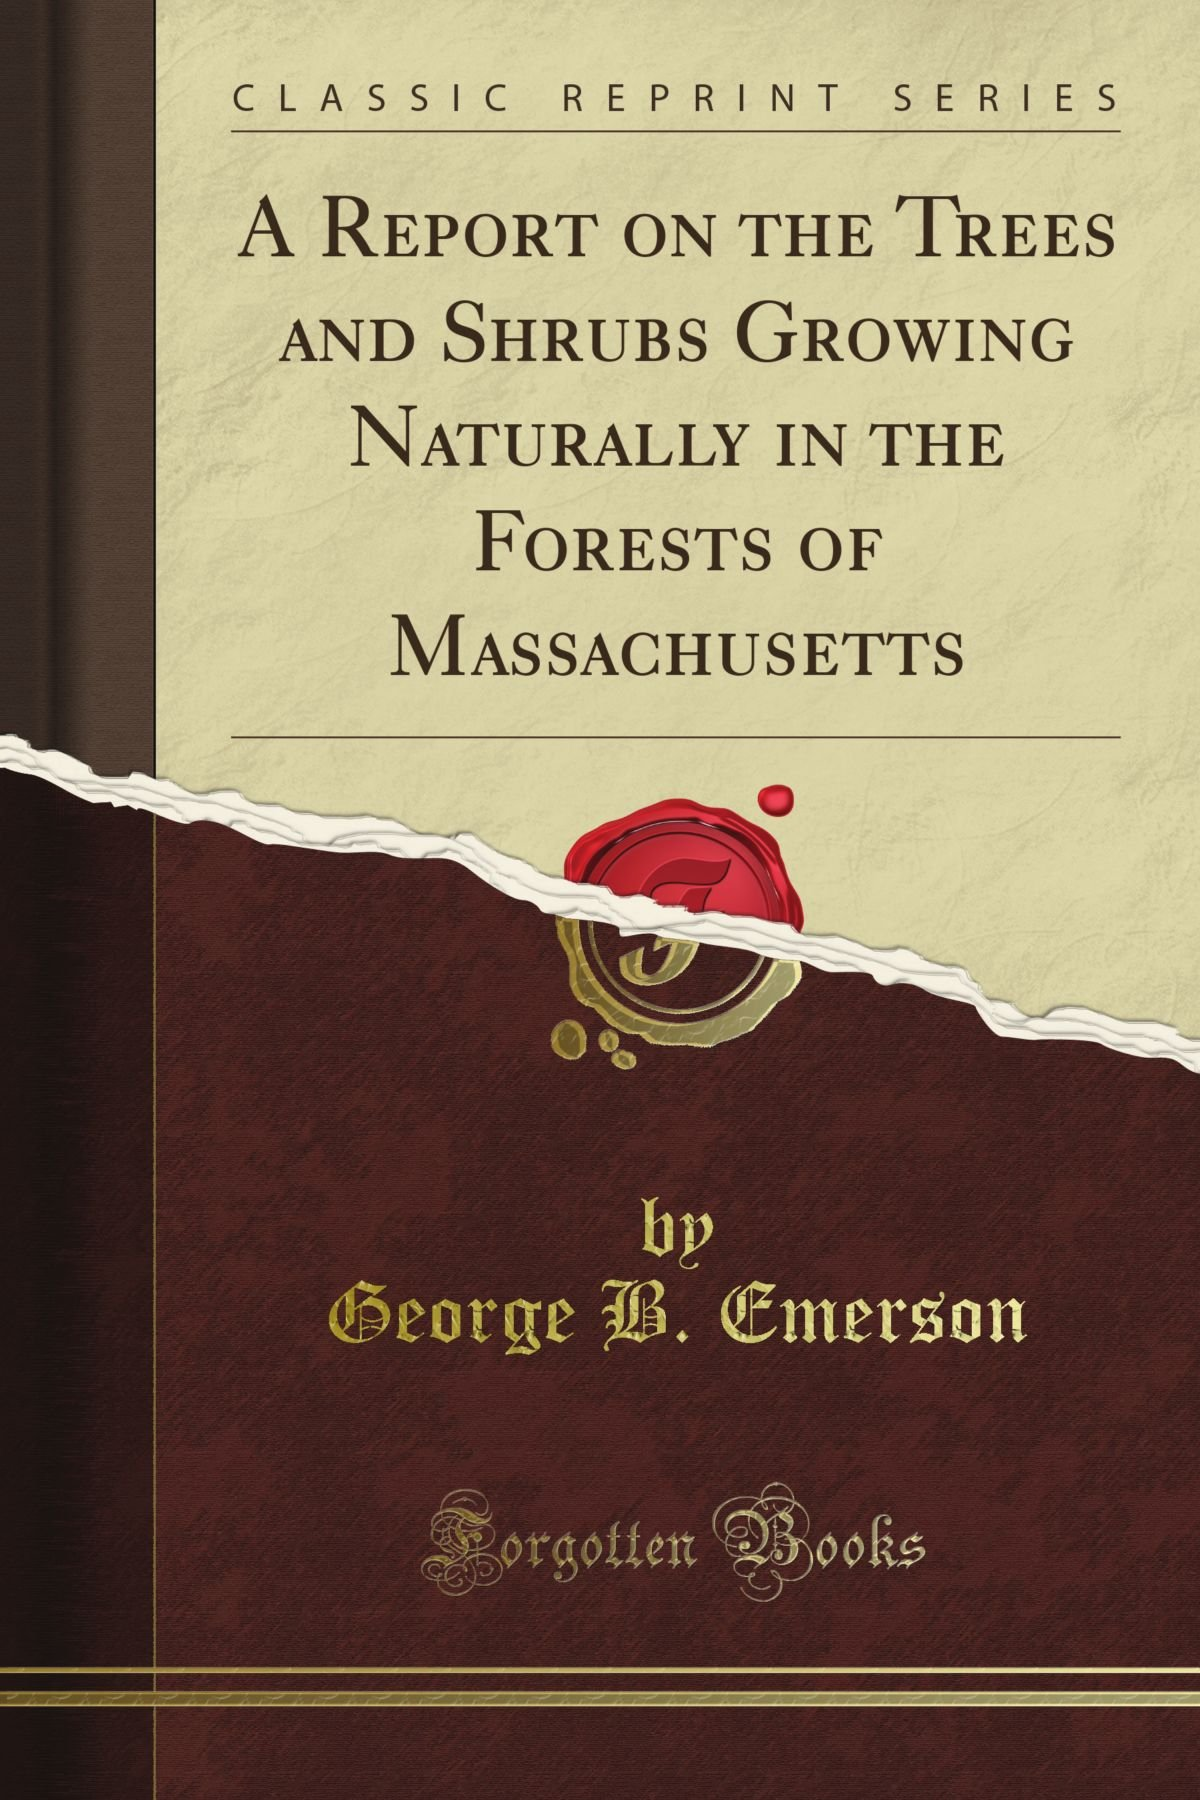 A Report on the Trees and Shrubs Growing Naturally in the Forests of Massachusetts (Classic Reprint) PDF